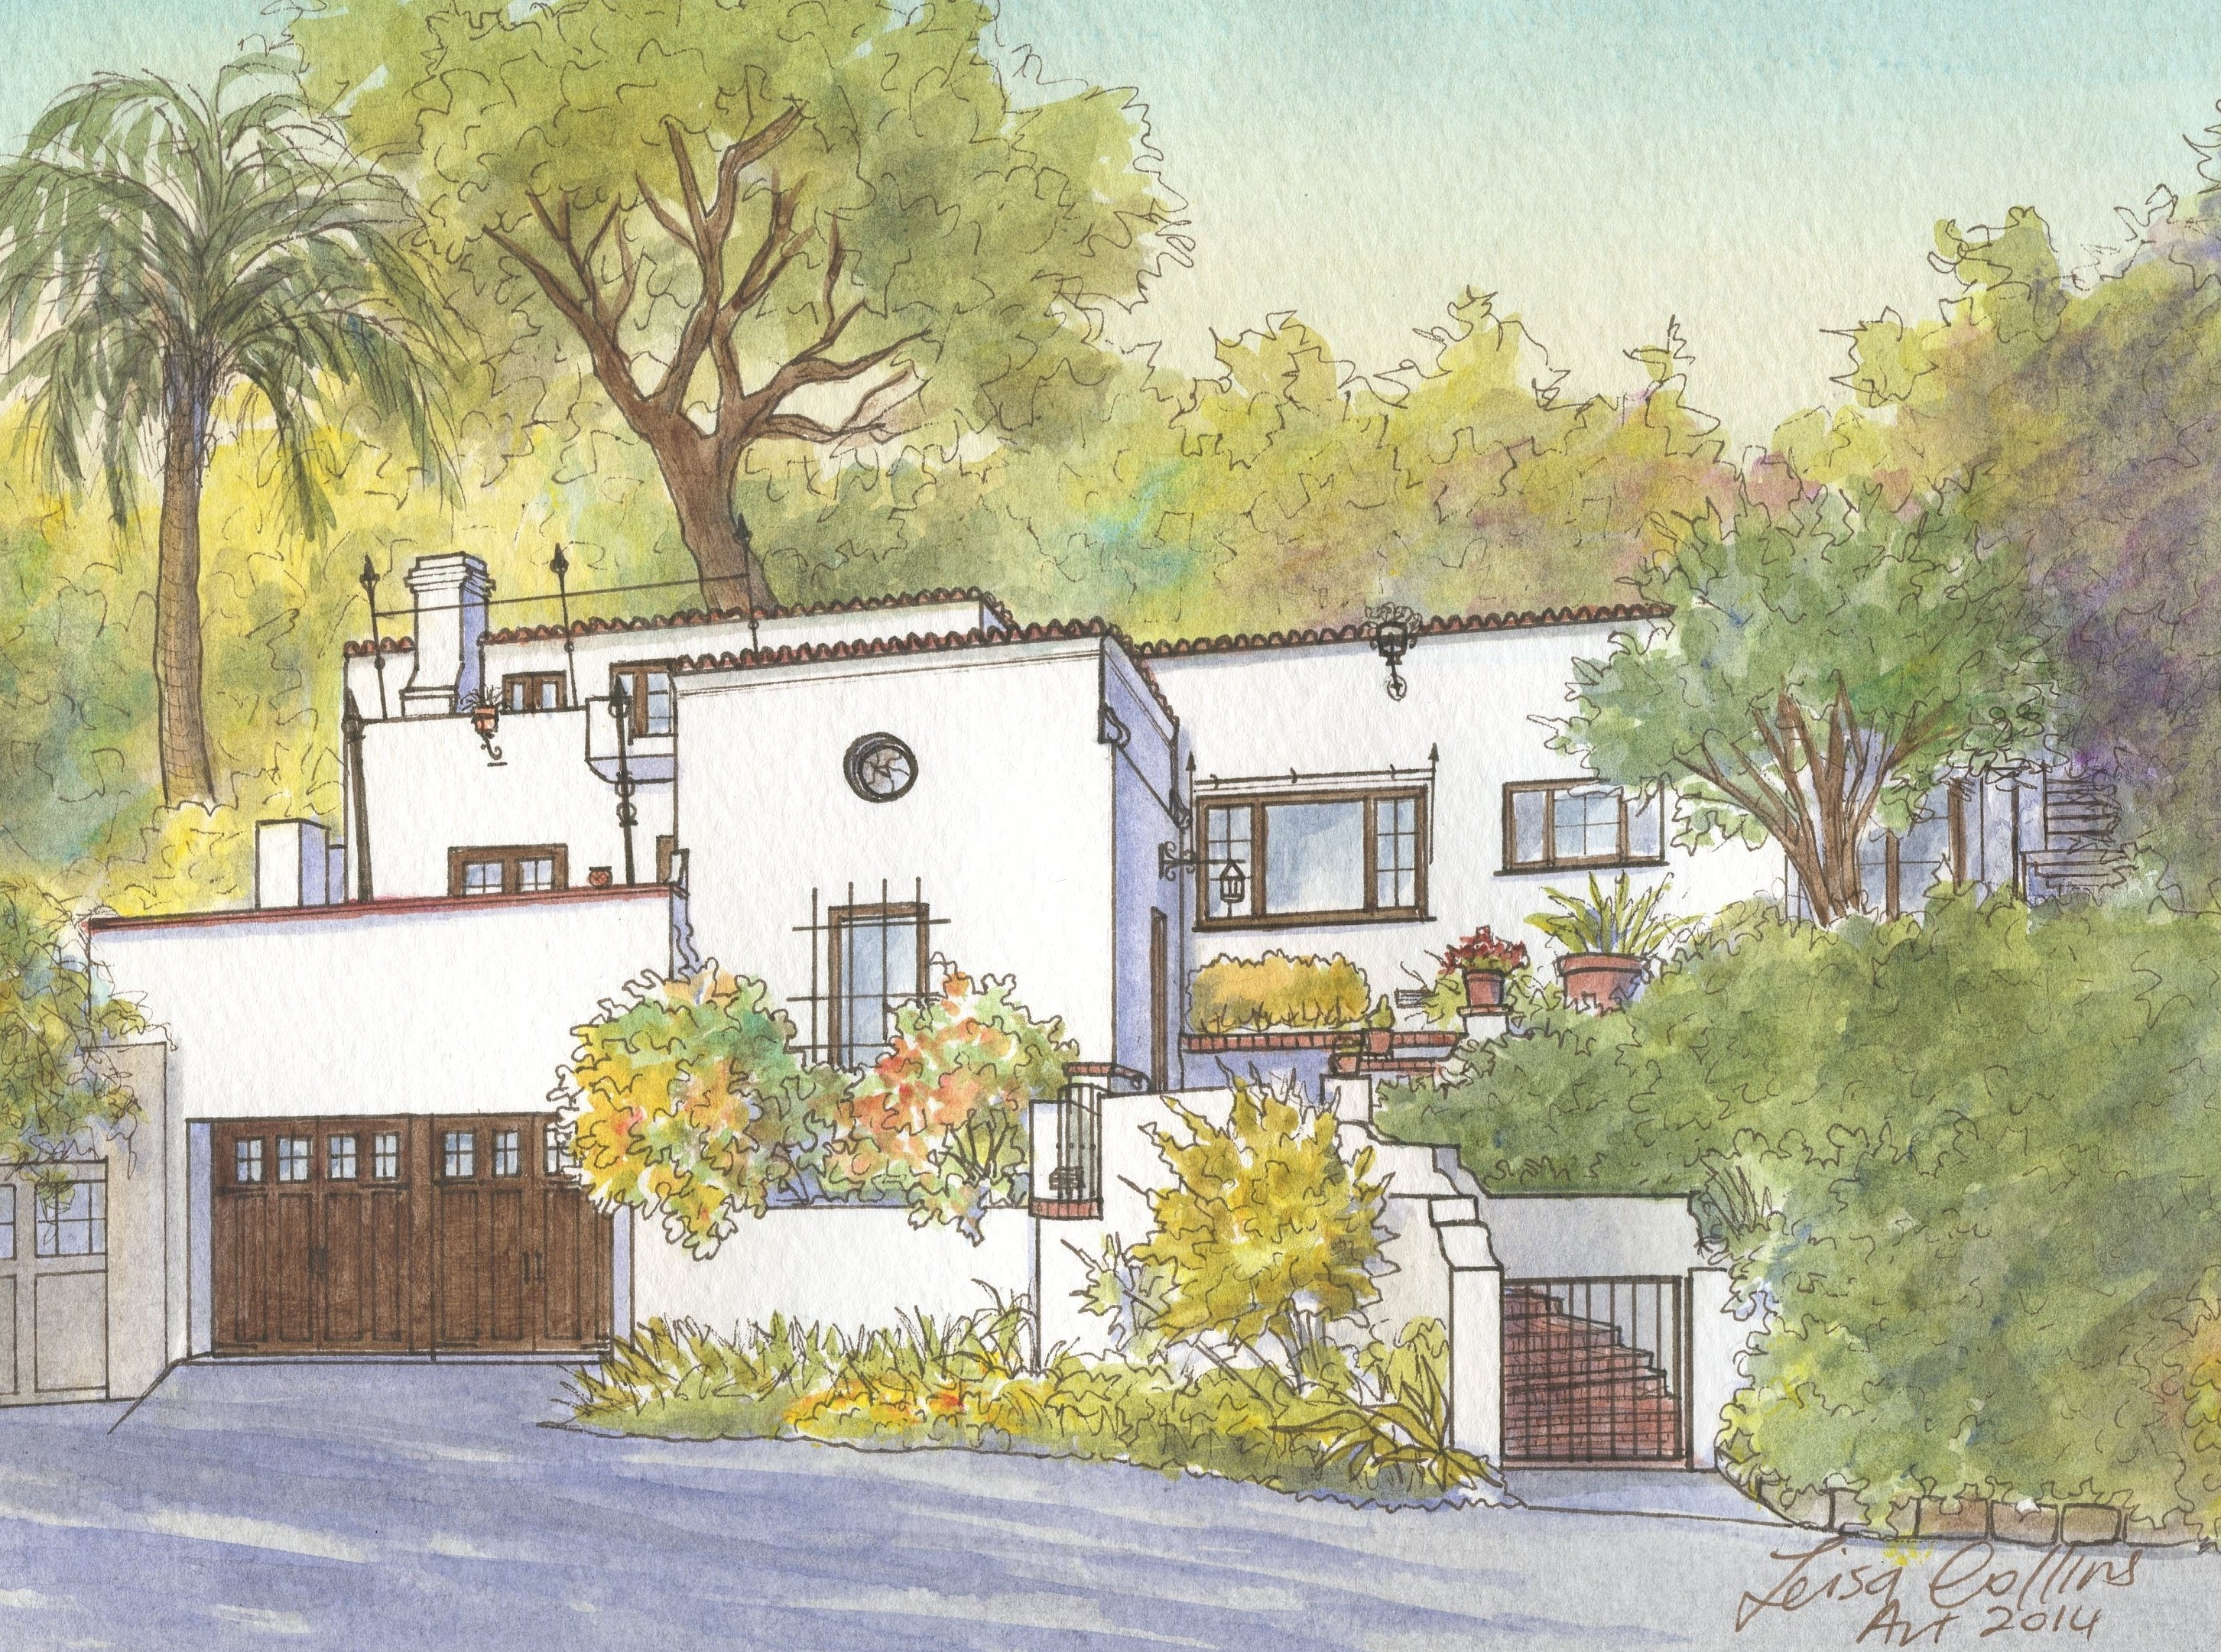 4664-Indian-Hill-Road-Riverside-COMMISSION-Sloan-Walsh